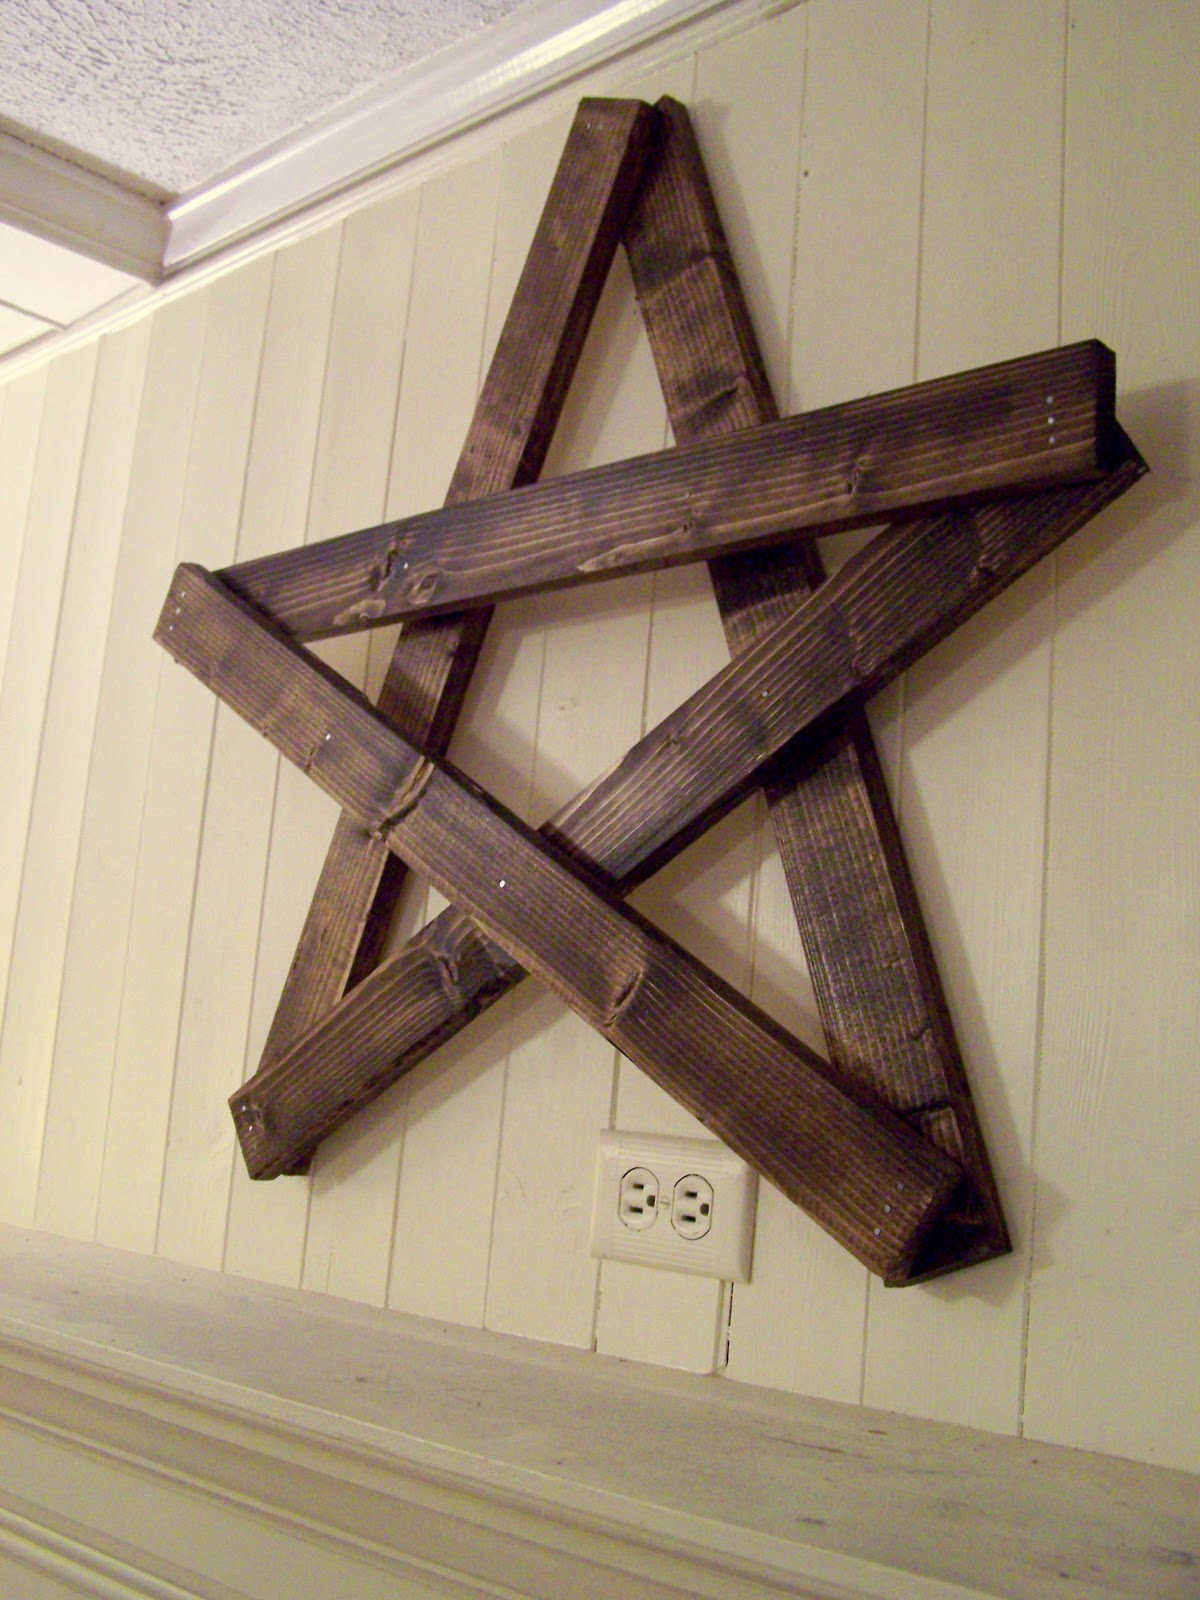 Wooden Star Wall Decor older and wisor: sylvester mcmonkey mcbean: a stars upon thars mantel